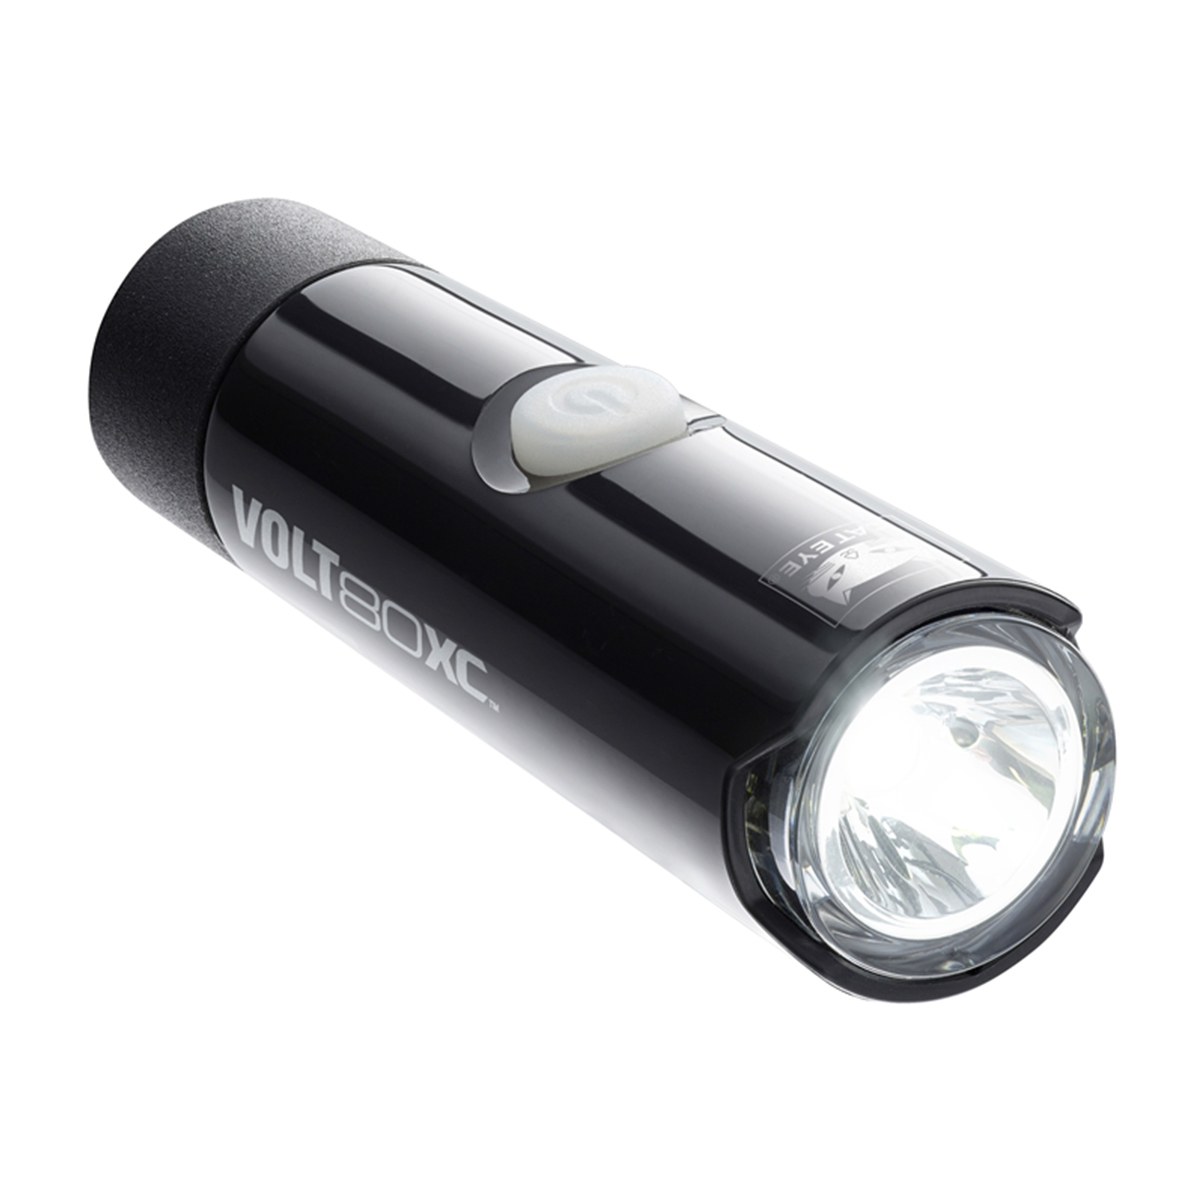 Cateye Volt 80 XC Rechargeable Front Light